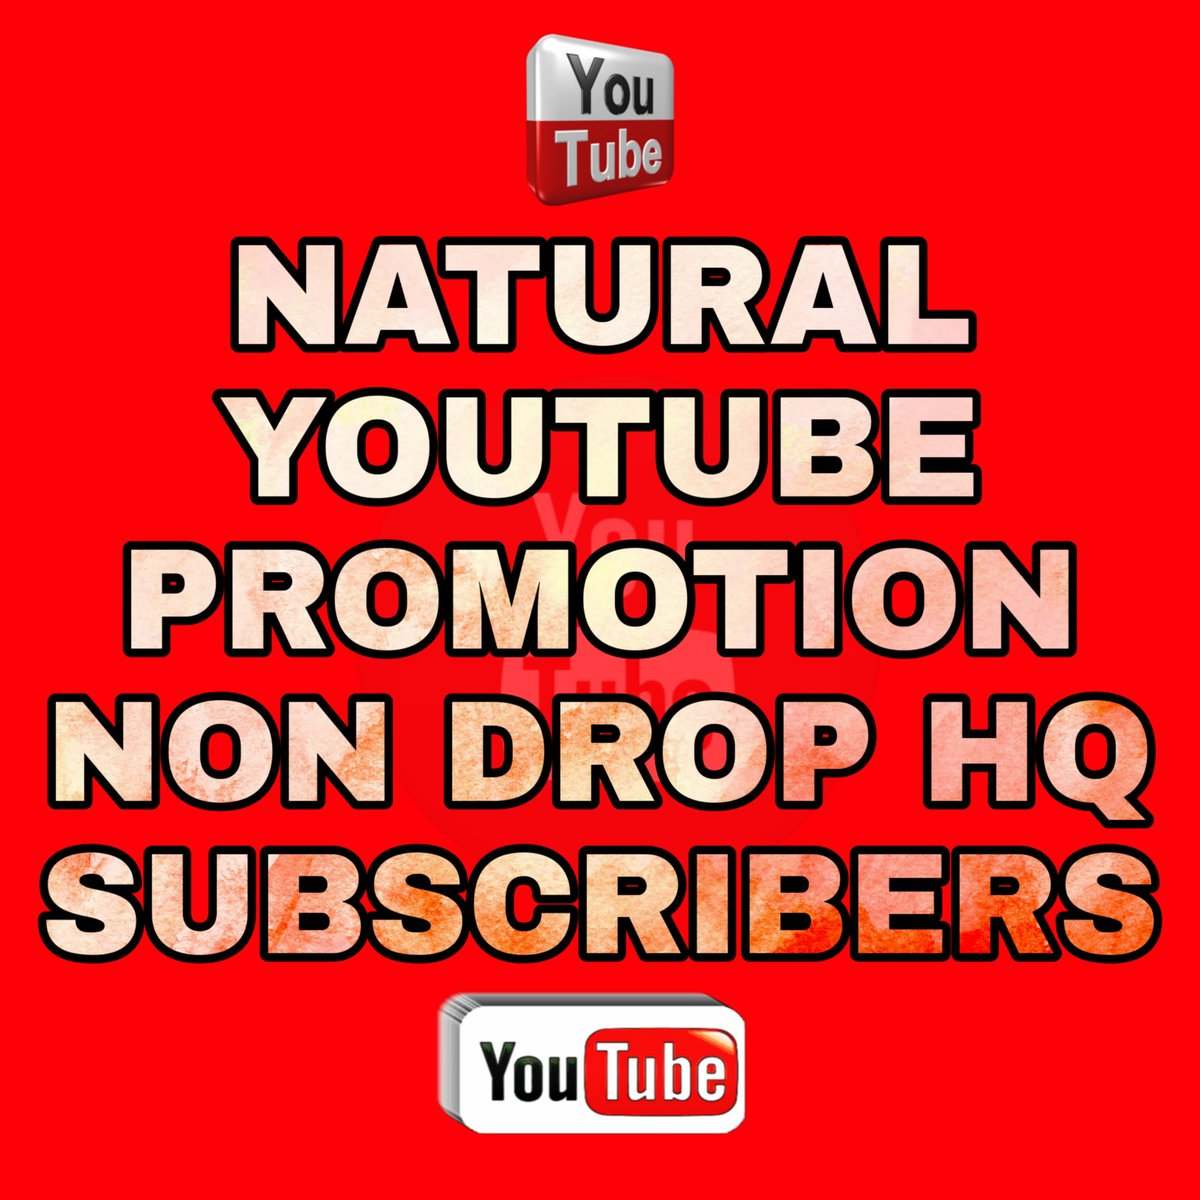 Hi There, if you increase your YouTube channel or videos DM me. I will help you and grow up your YouTube channel.  Services : Views, Subscribers, Watchtime.  #YouTube #YouTuber #youtubepromotion #youtubegamer #youtubechannel #youtubevideos #Subscribepic.twitter.com/8ZZOPuDRt9